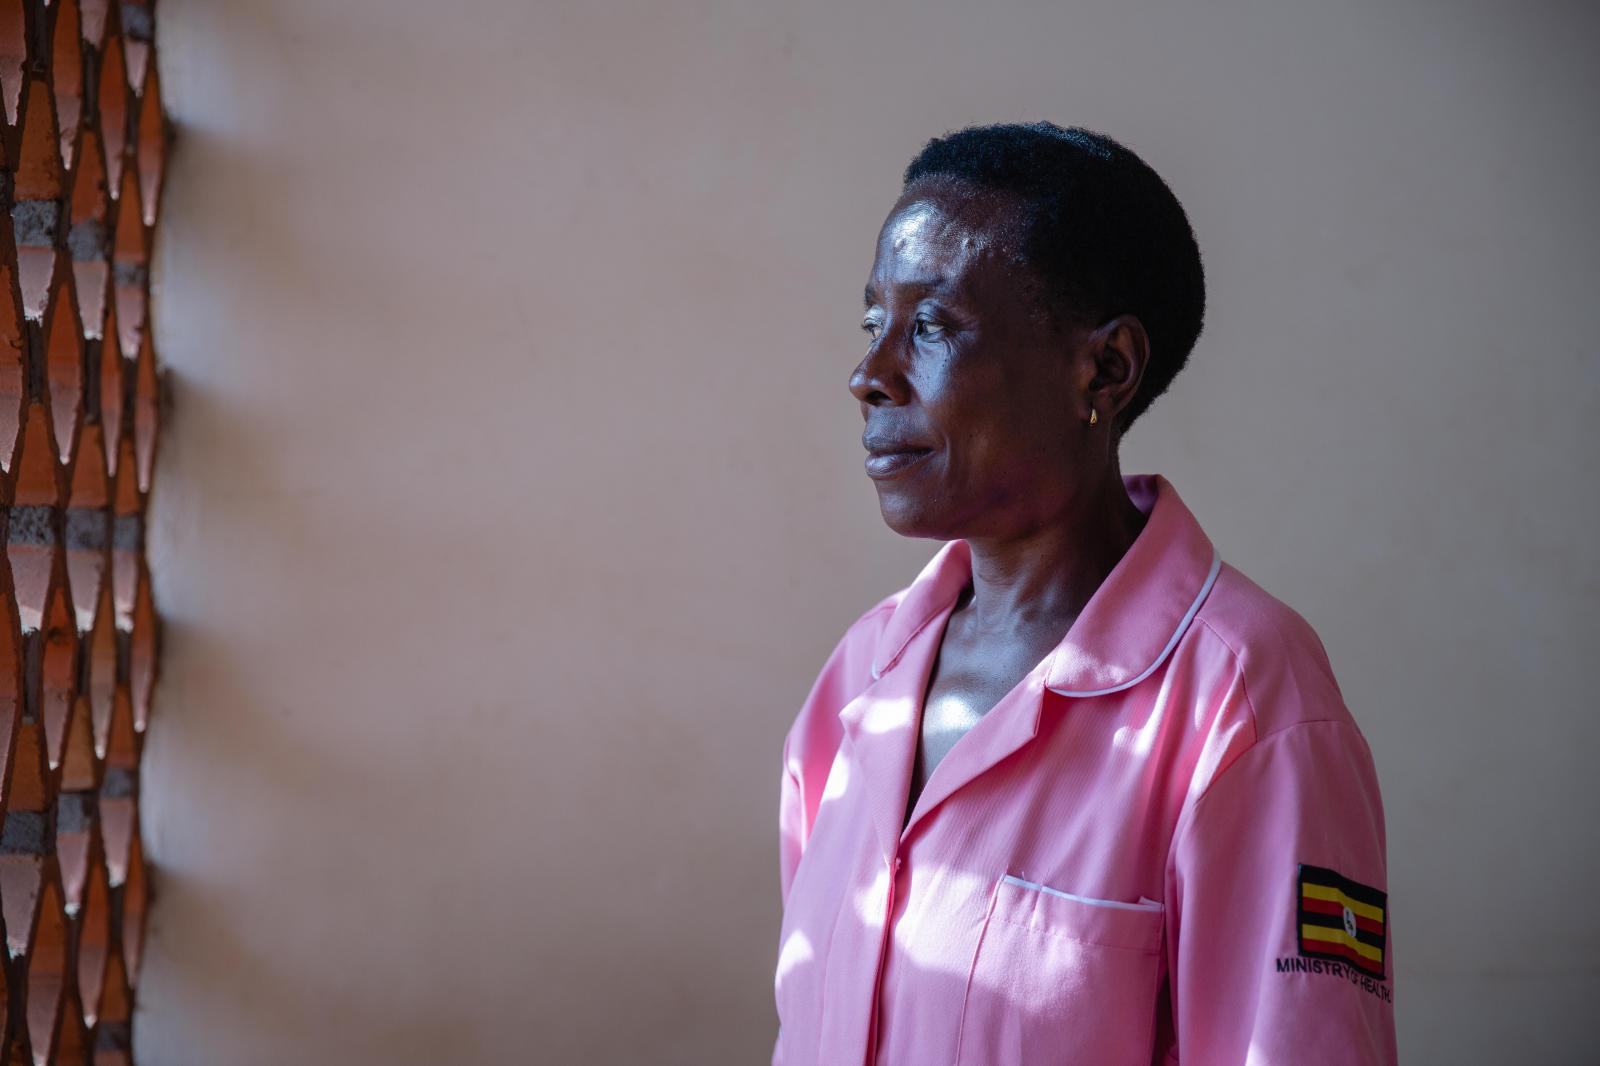 A portrait of Nurse Margaret Kasolo, 57, at Kawala Health Center IV in Kampala, Uganda. She has been a midwife for 35 years and has worked with Action Aid since 2013 as a Gender Based Violence focal person at the hospital. Margaret links clients that need help from Action Aid to the organisation's shelters and Action Aid links clients that need medical attention to her at the hospital. For Action Aid UK.